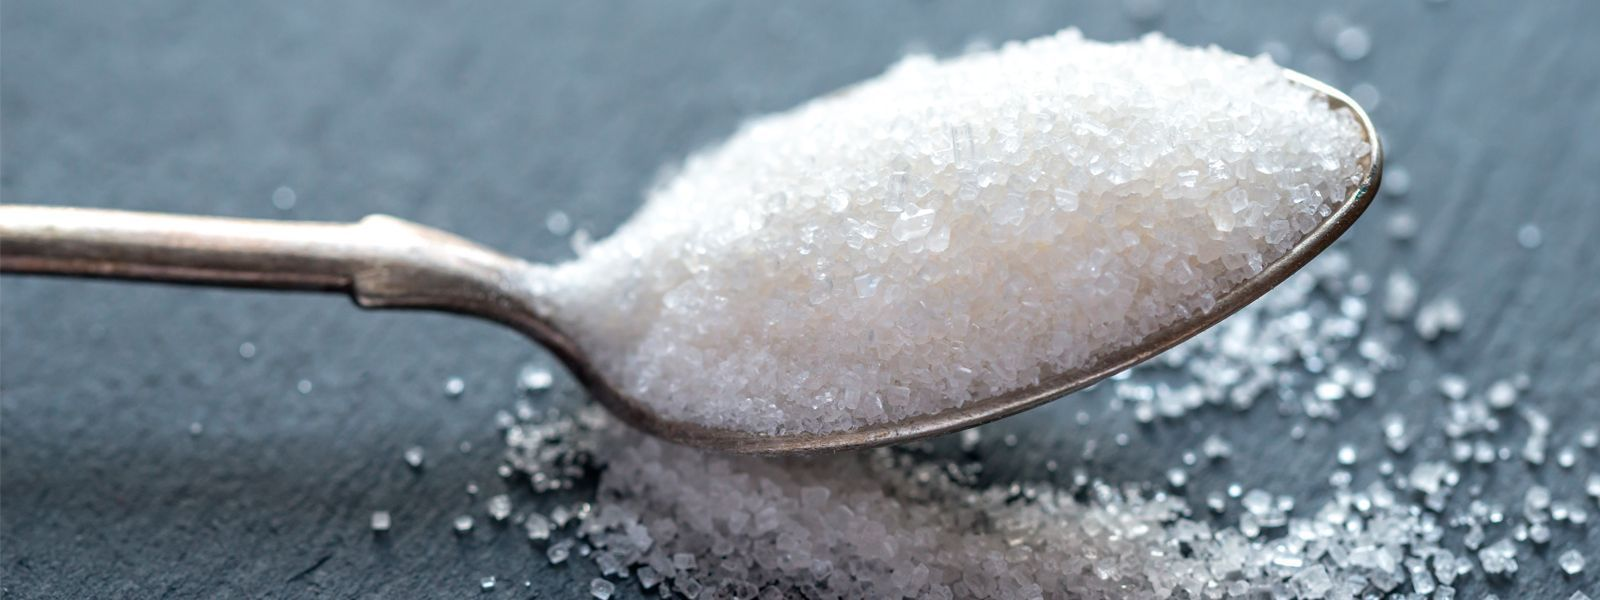 Too Much Sugar? Signs that You Are Consuming too Much